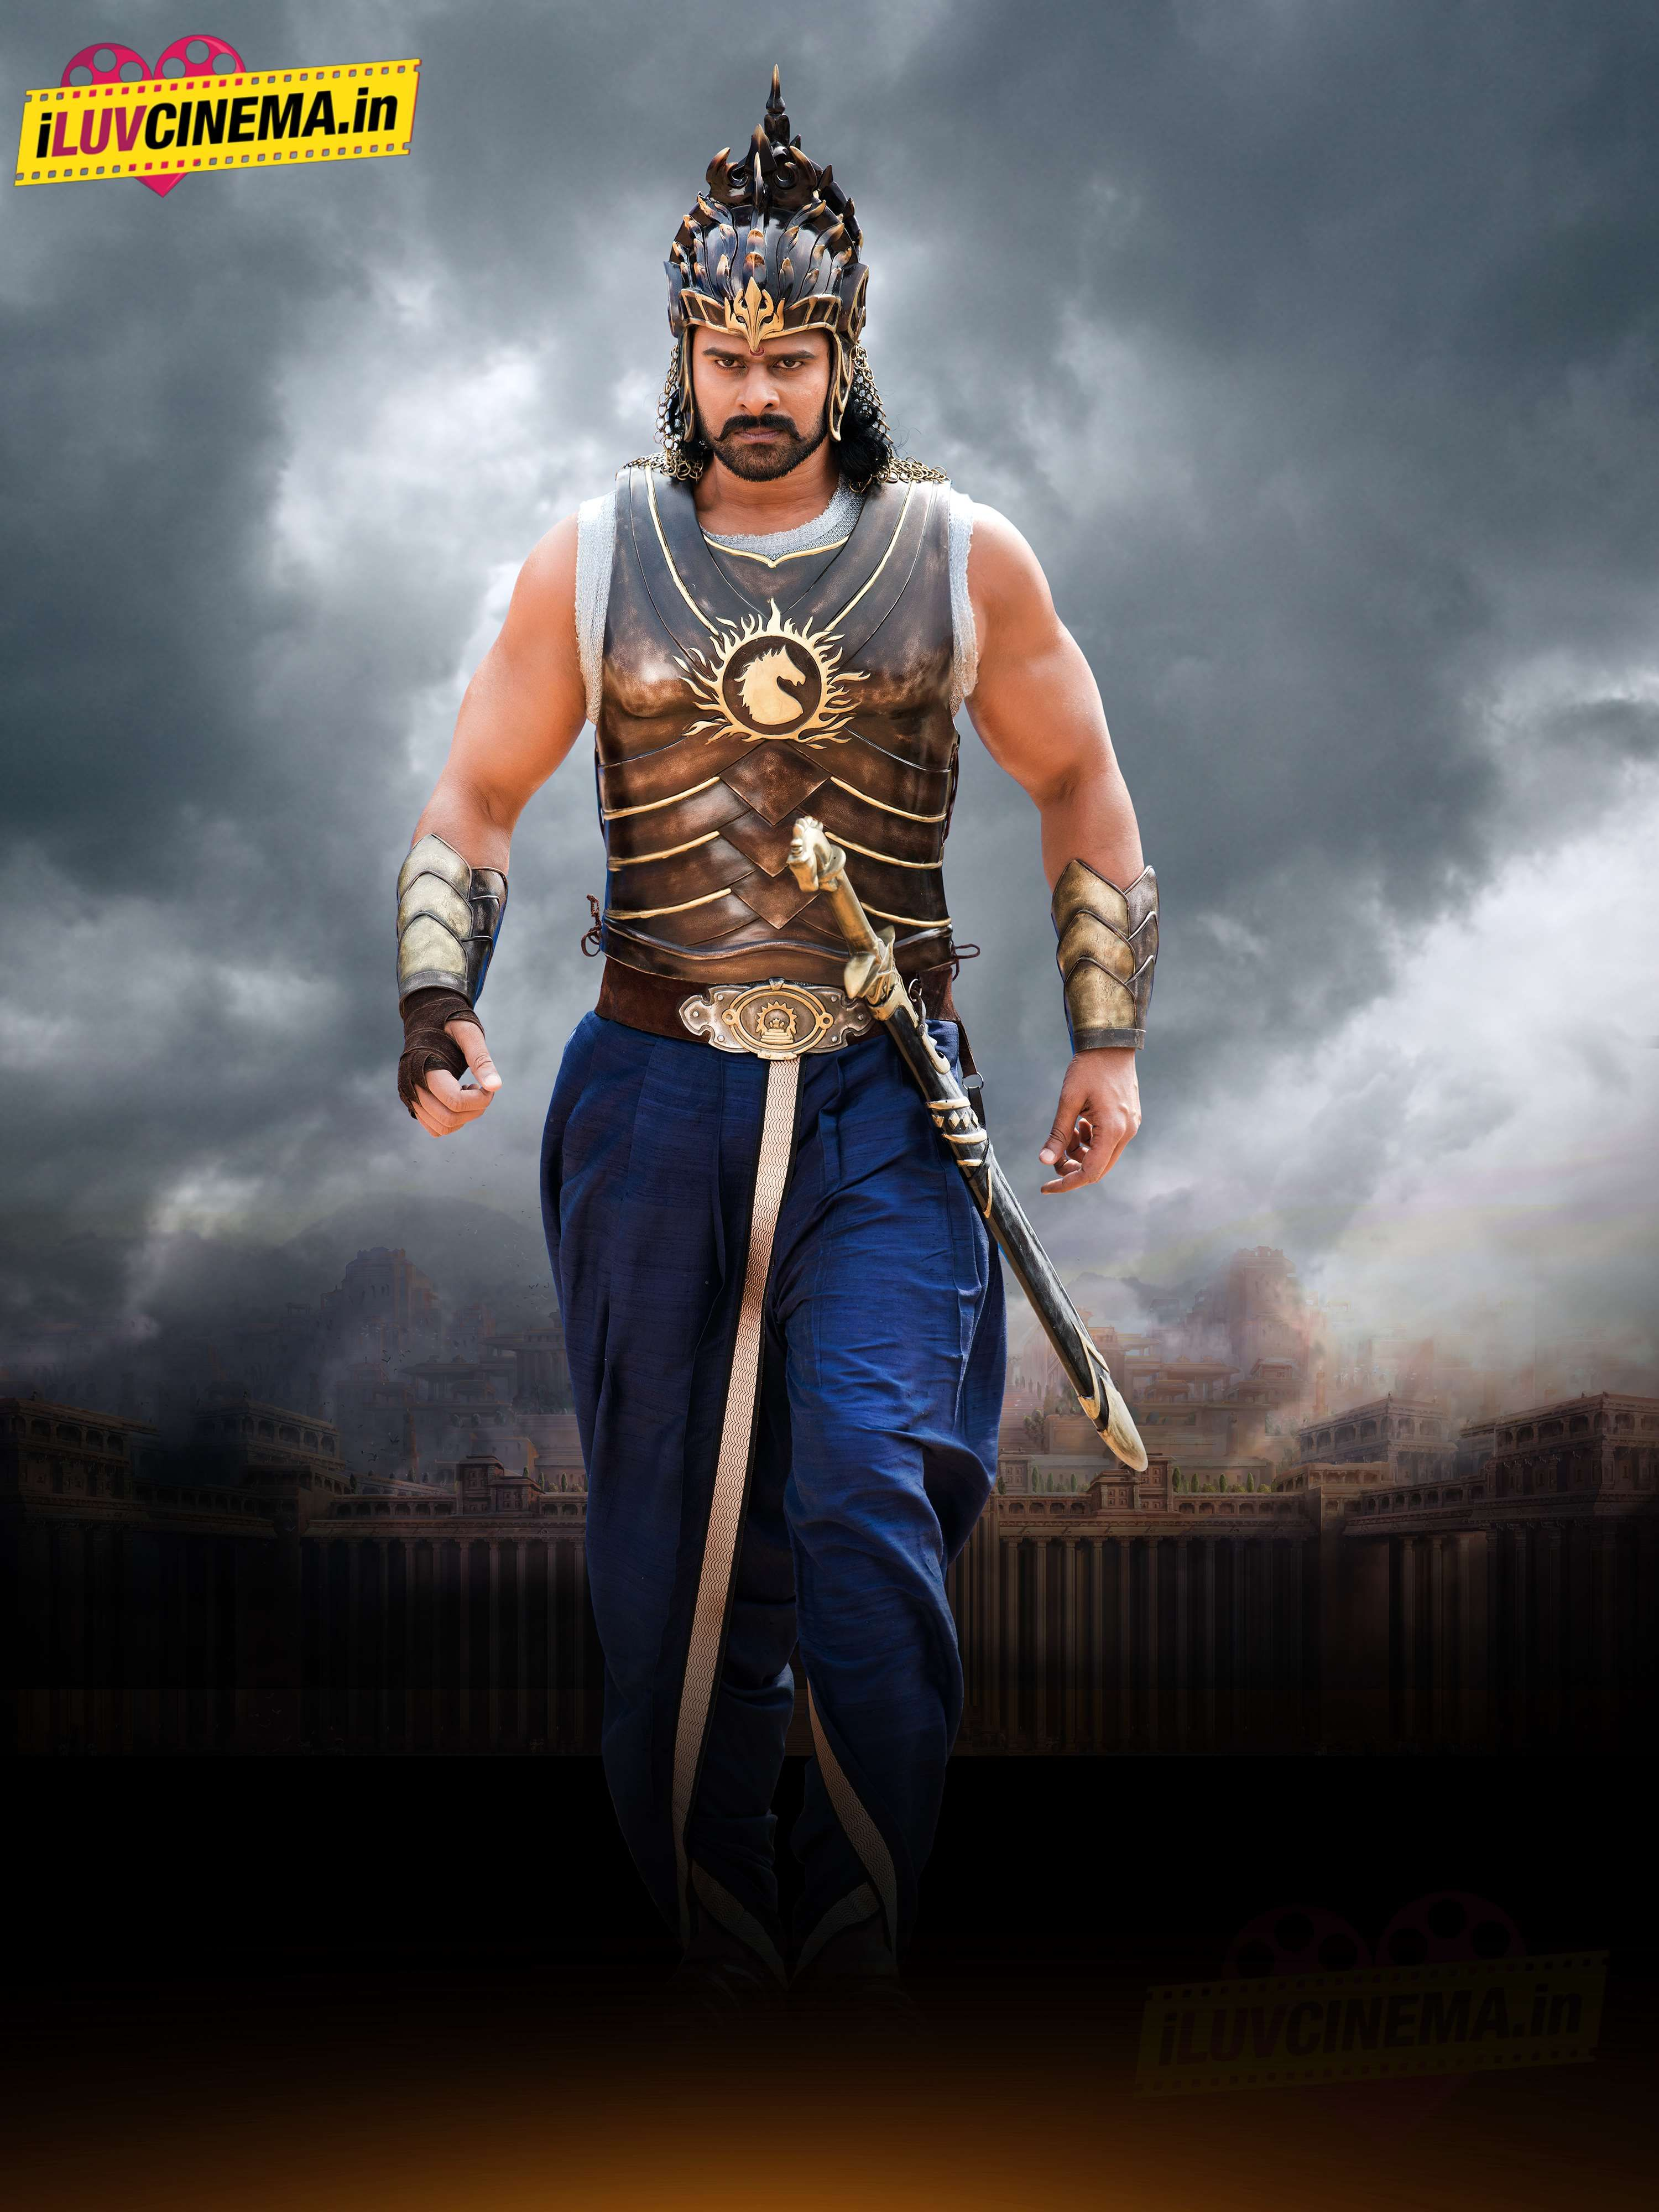 baahubali movie stills (2) | indian design | pinterest | movie and